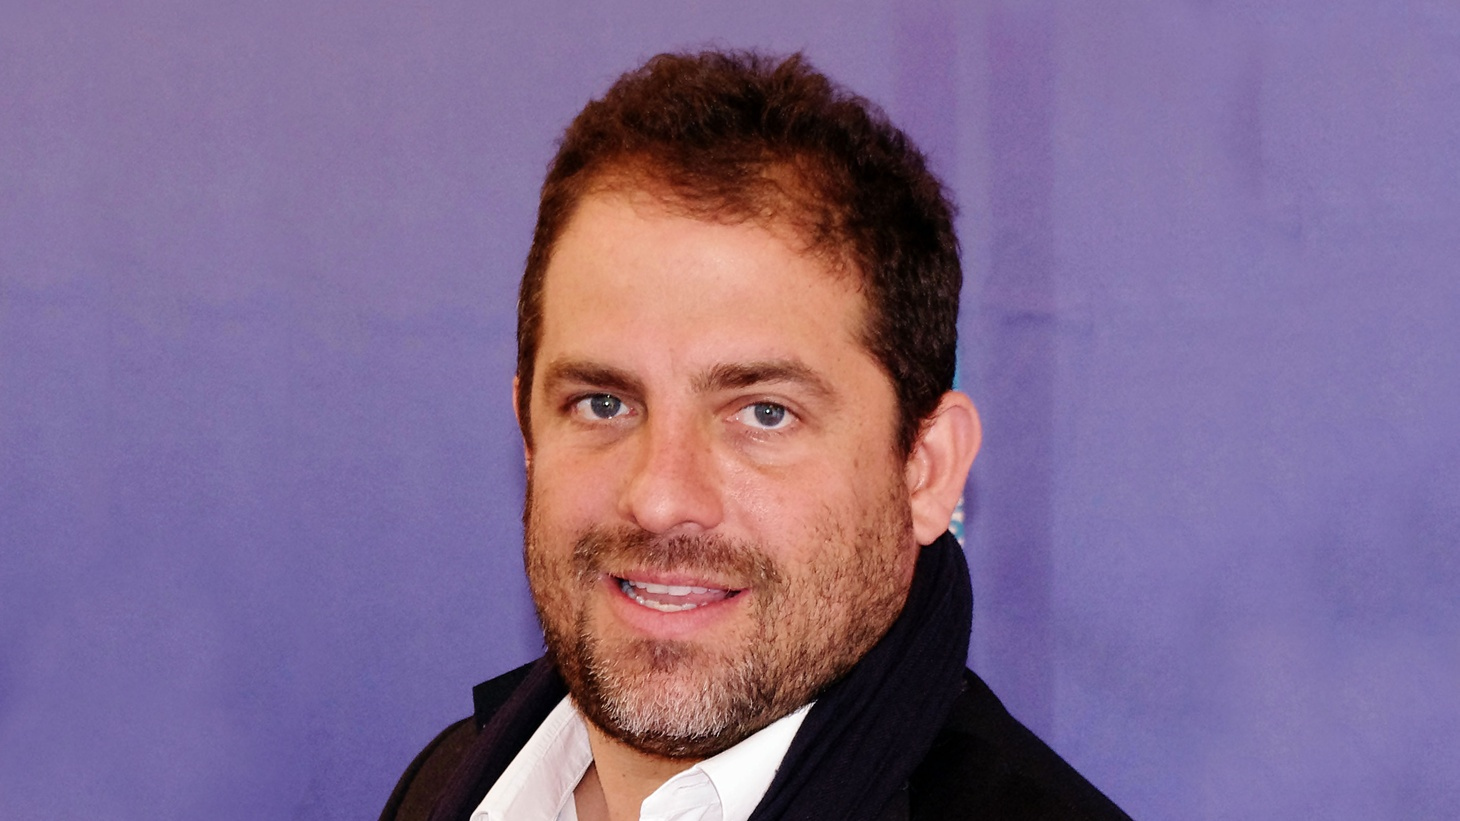 """Filmmaker Brett Ratner is the latest man in the news facing sexual harassment allegations. Women also say abuse is rampant in the art world. But some wonder if """"Weinsteining"""" has gone too far and ask if some men who aren't predators are being lumped in with the group."""